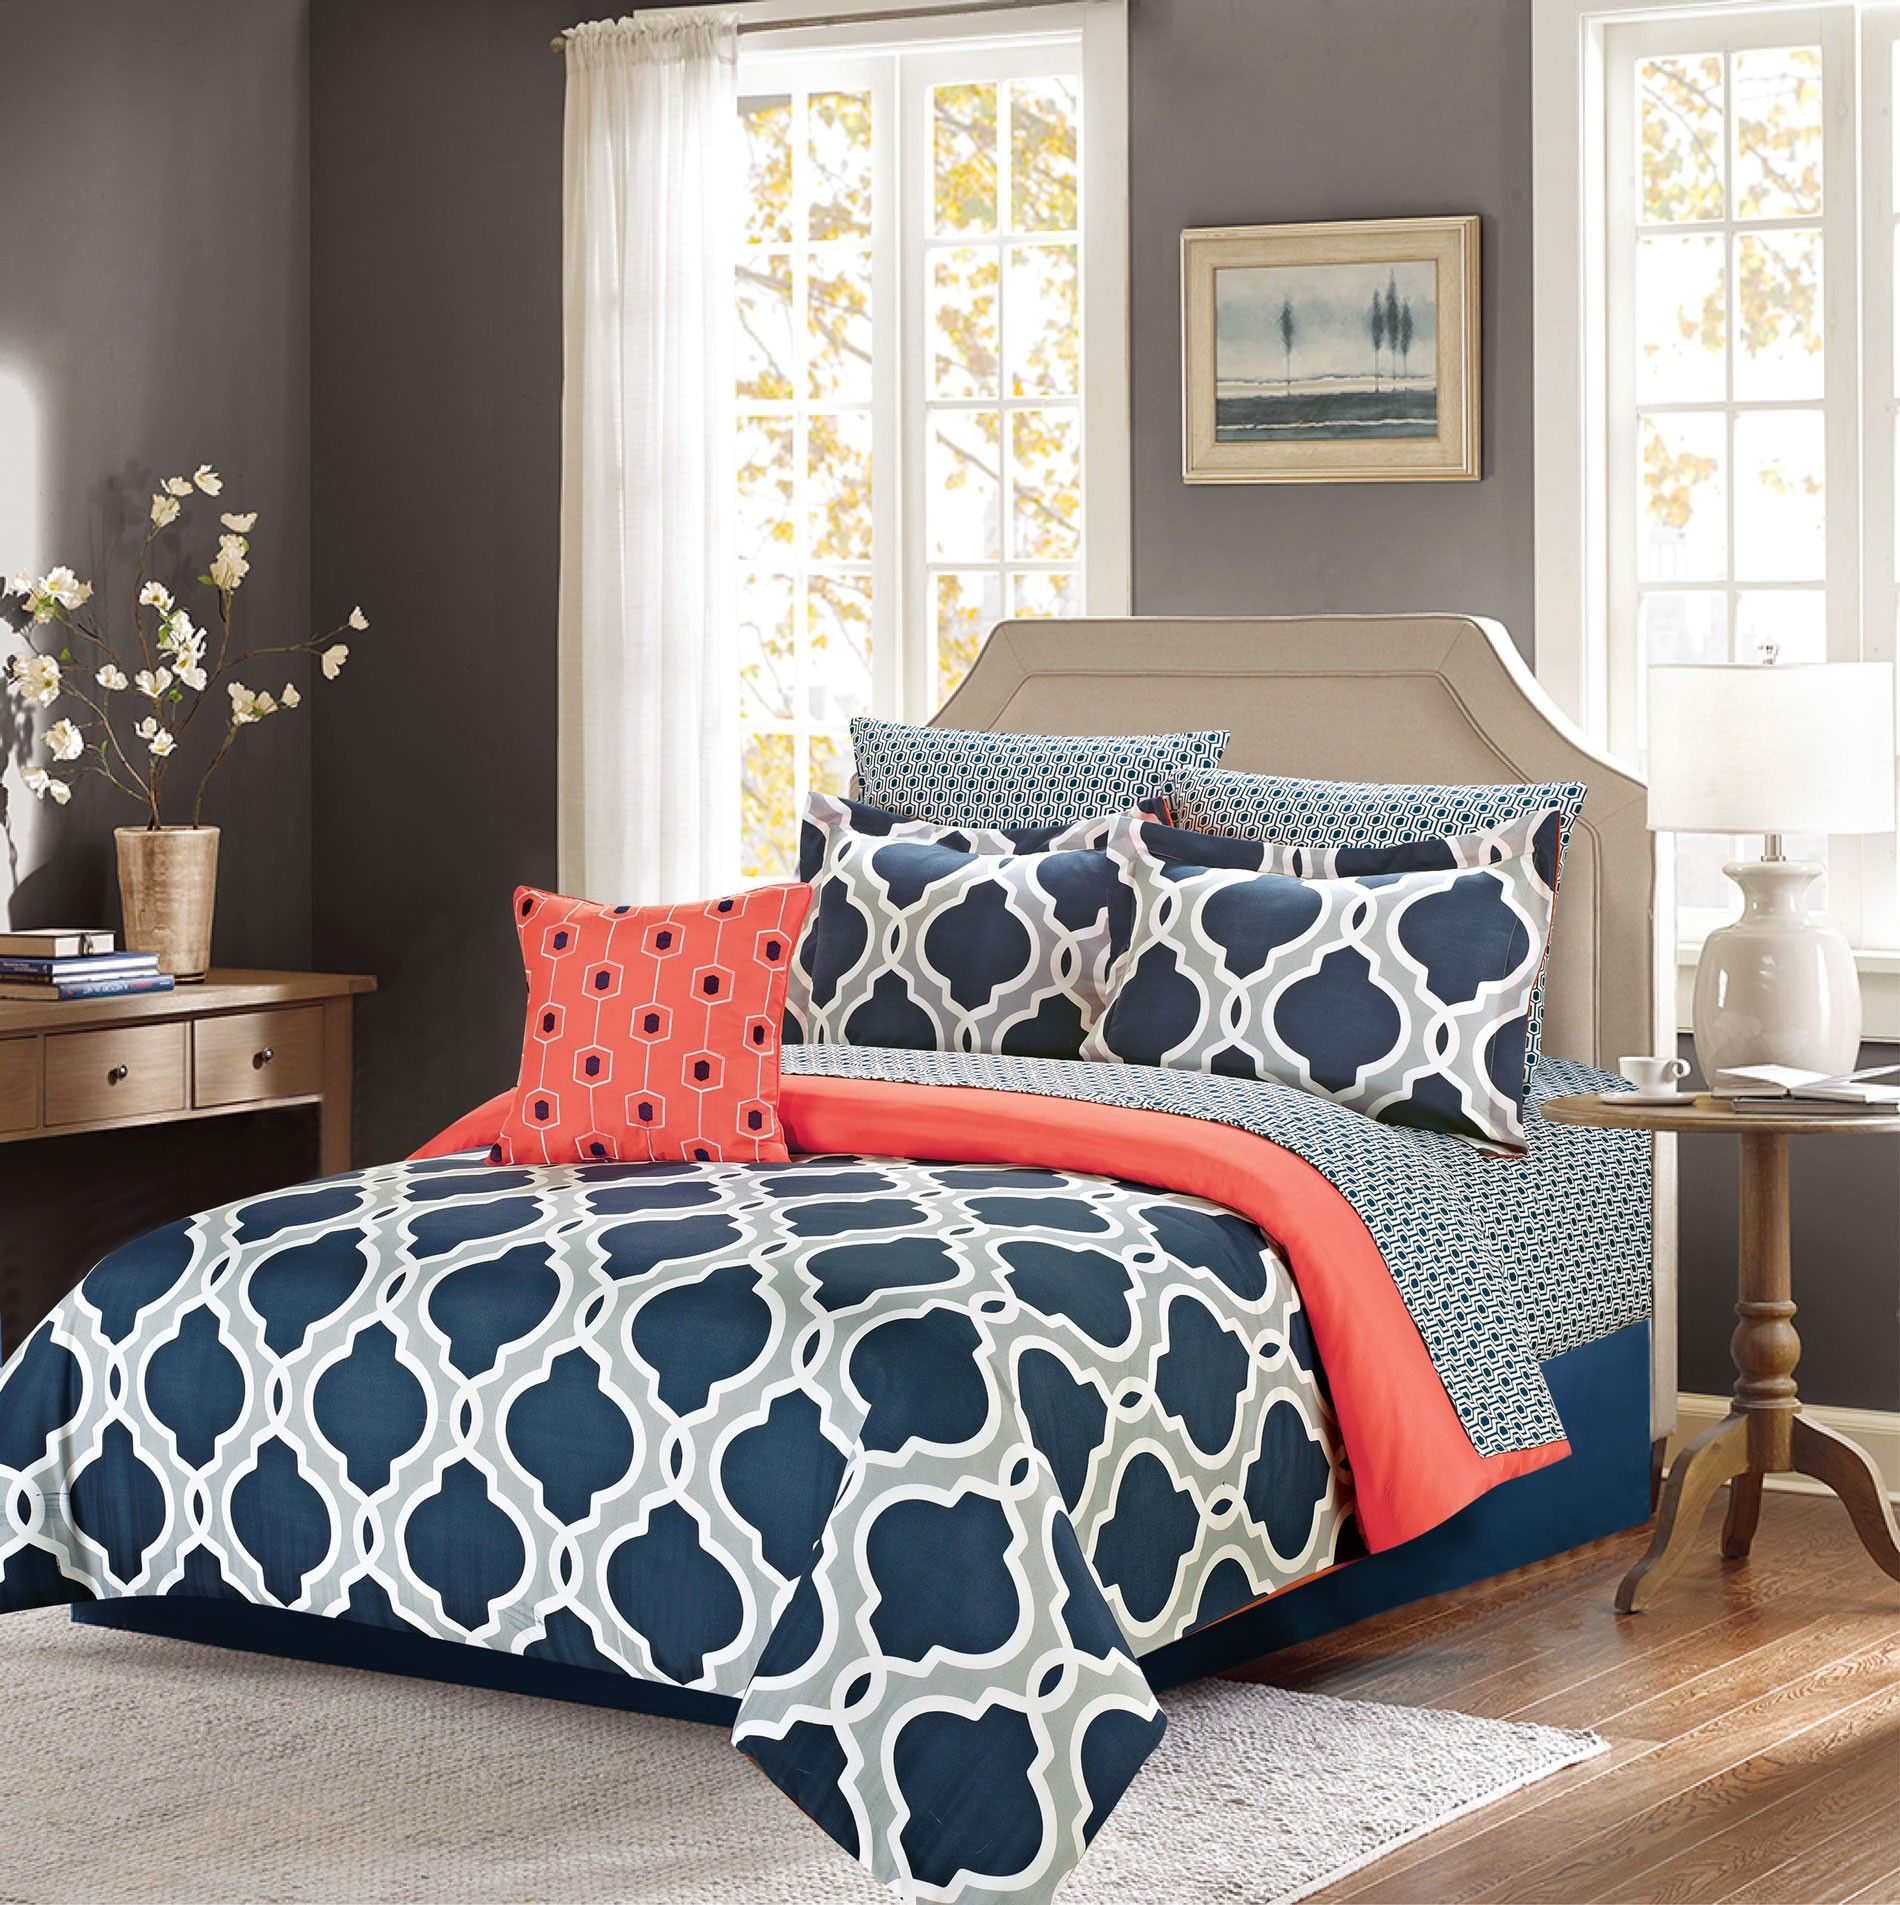 Royal blue bedding queen - Crest Home Ellen Westbury King Comforter Bedding Set With Sheets Navy Blue And Grey Quatrefoil 8 Pc Bed In A Bag